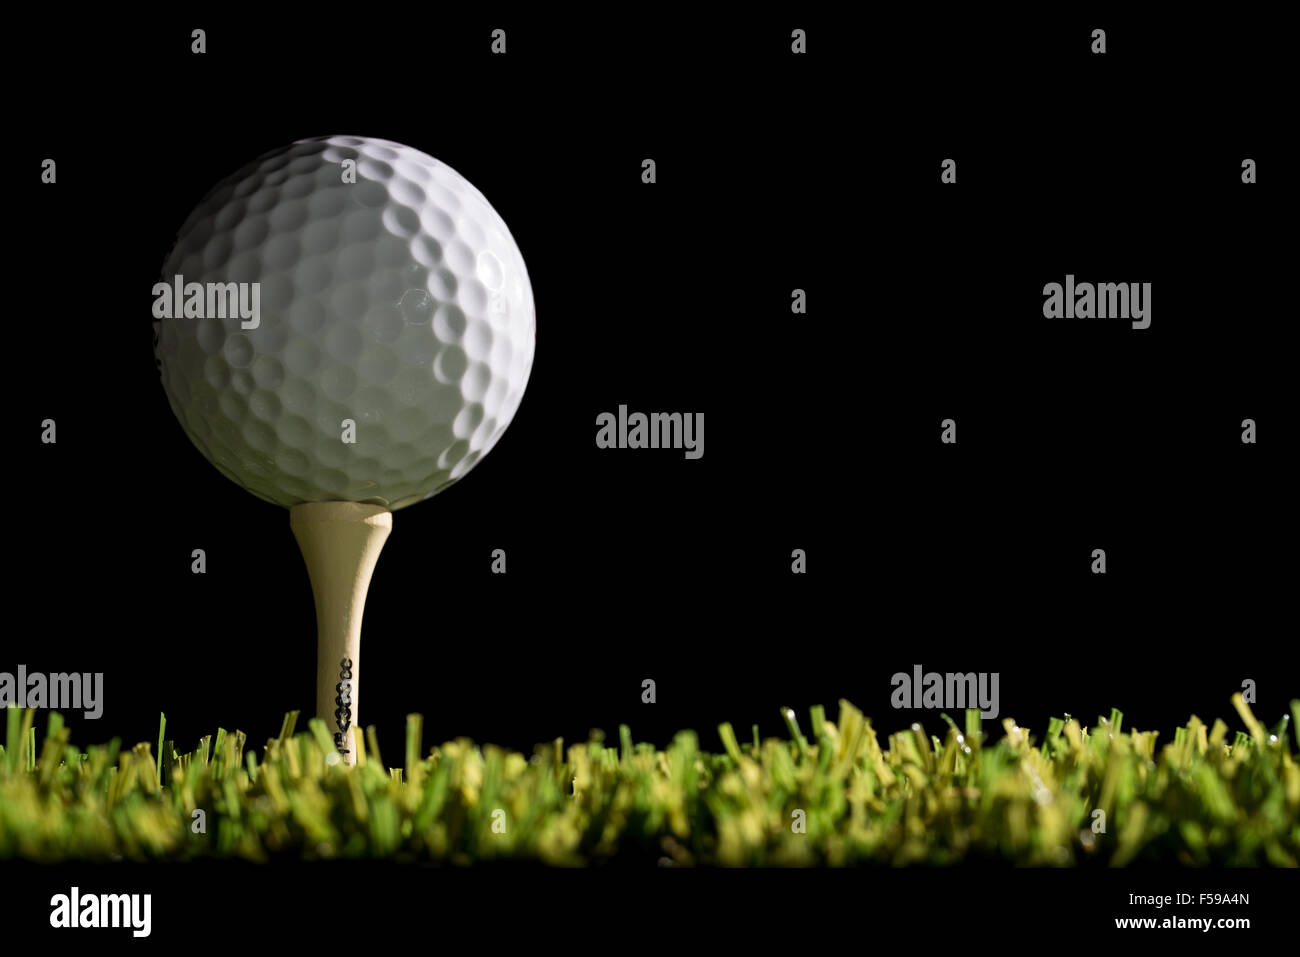 golf ball on a tee at night - Stock Image